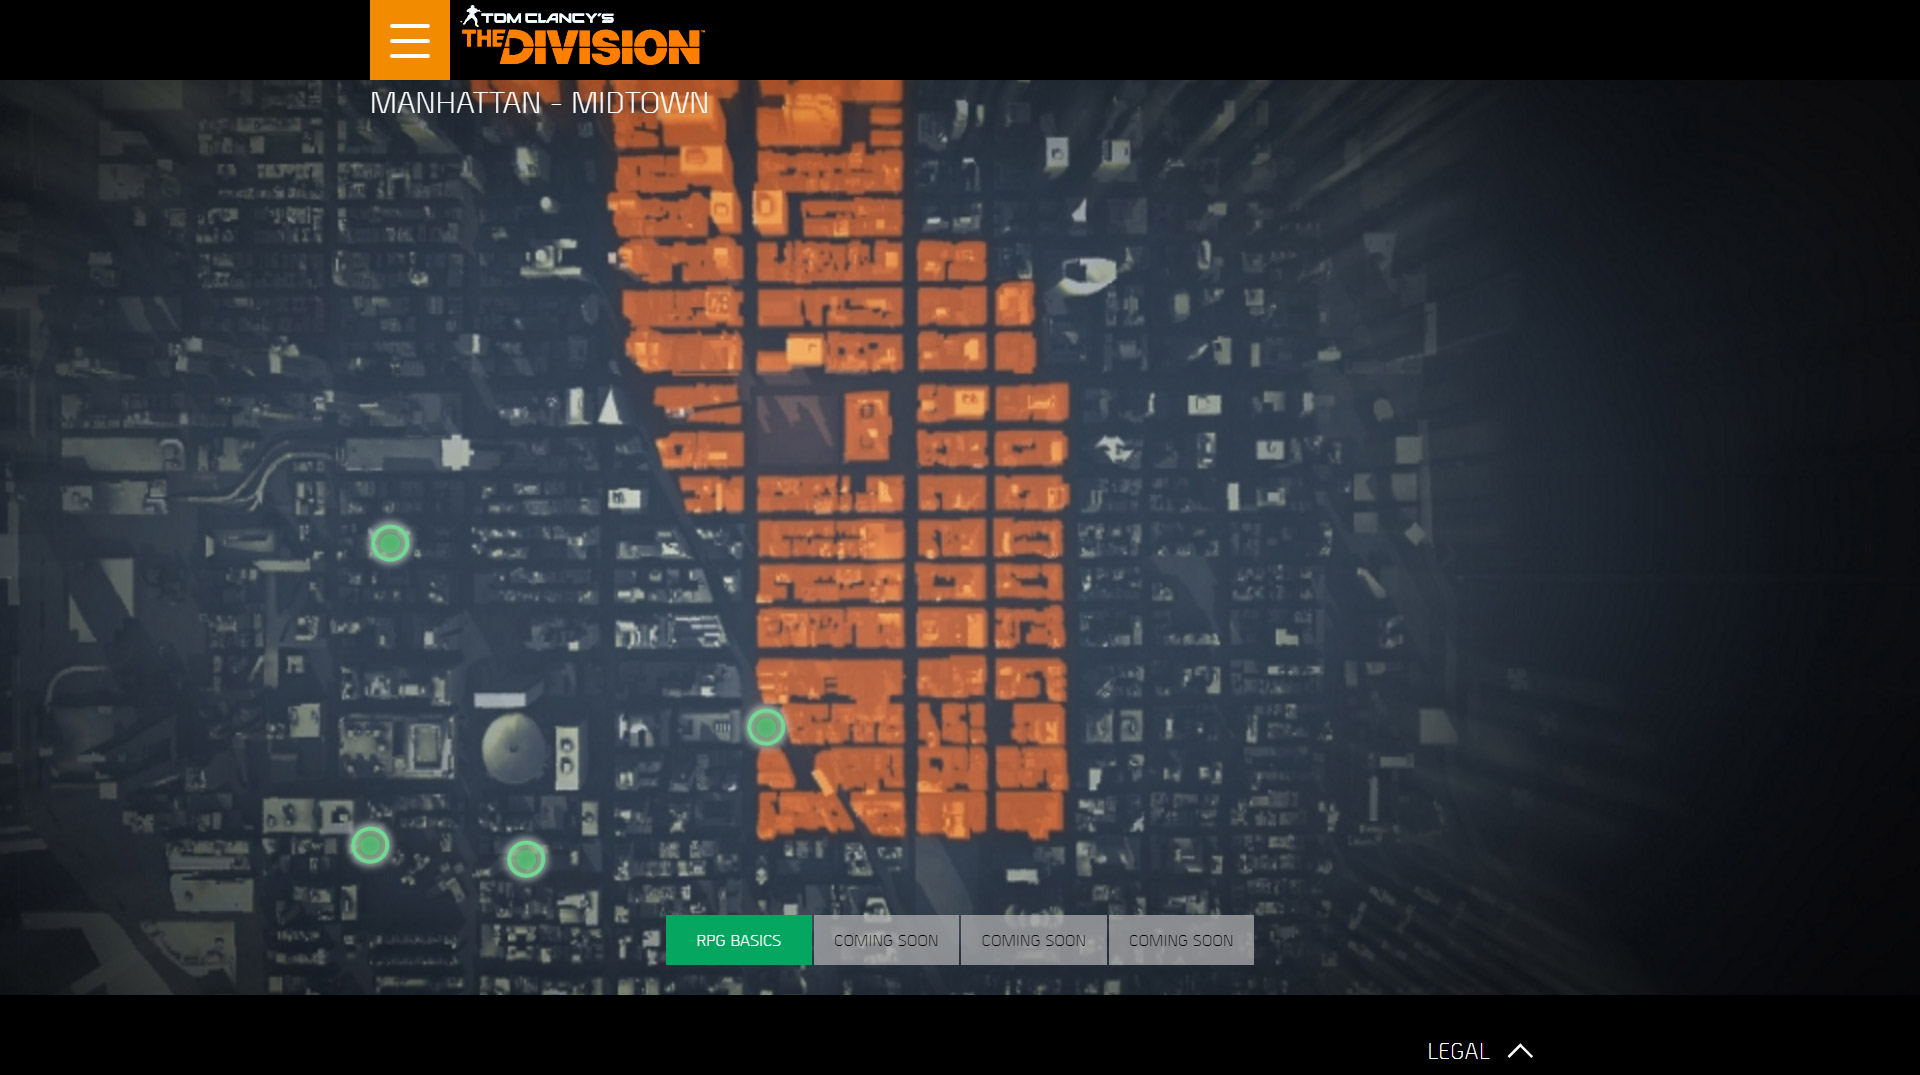 The Division Agent Intel Interactive Map Available Outside The Us